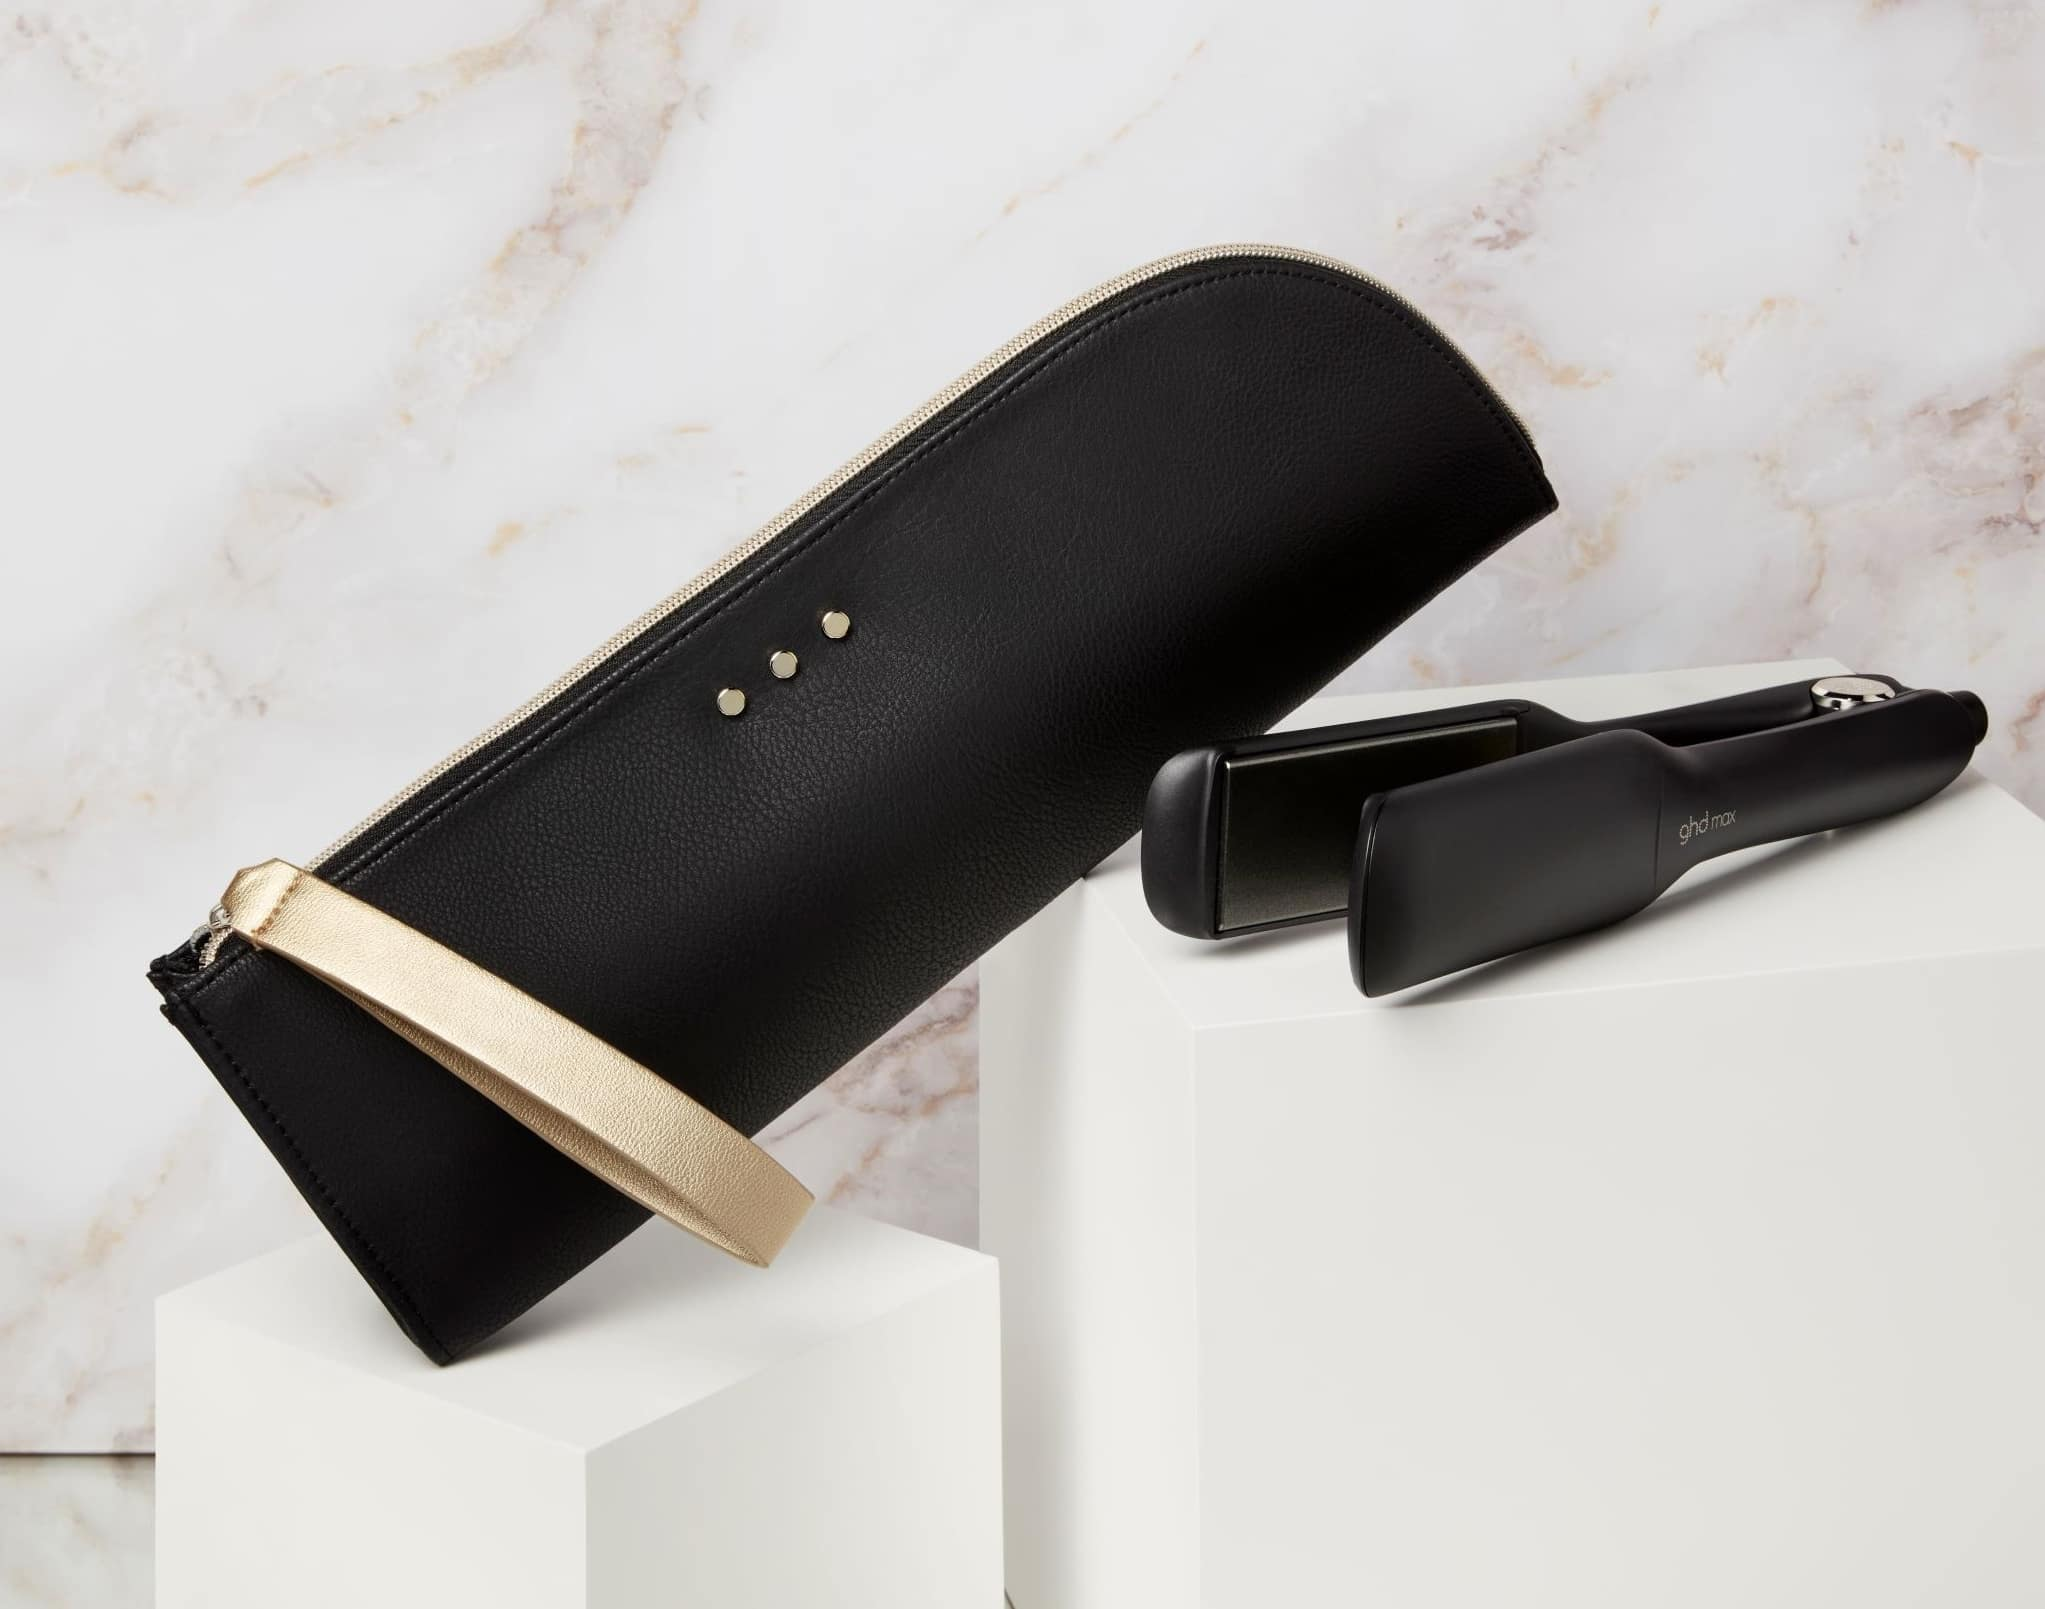 ghd max wide plate styler and Black heat resistant bag